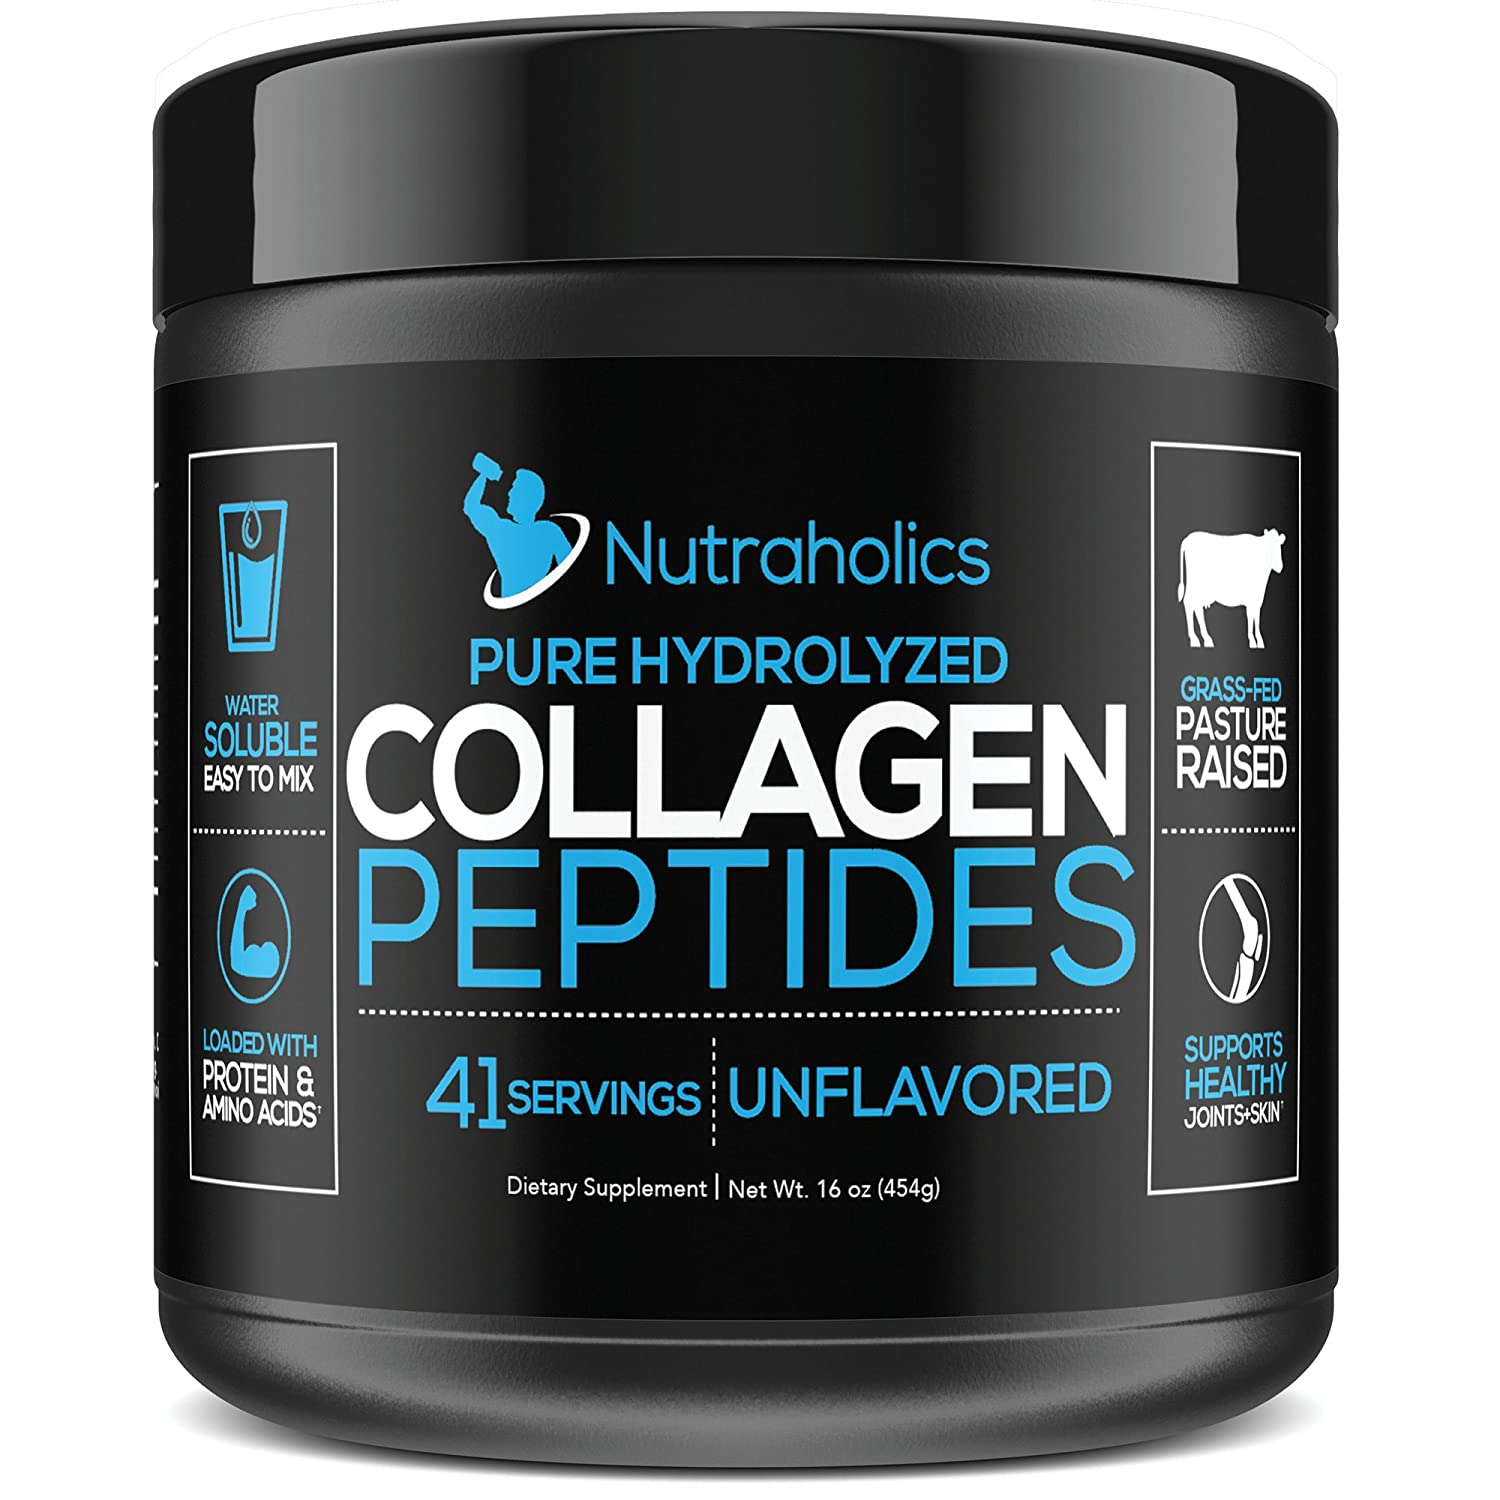 Collagen Peptides Hydrolyzed Protein Powder | Grass Fed Pasture Raised | Certified Paleo & Keto Friendly | 11 Grams per Serving | 16 OZ. Bottle | ...